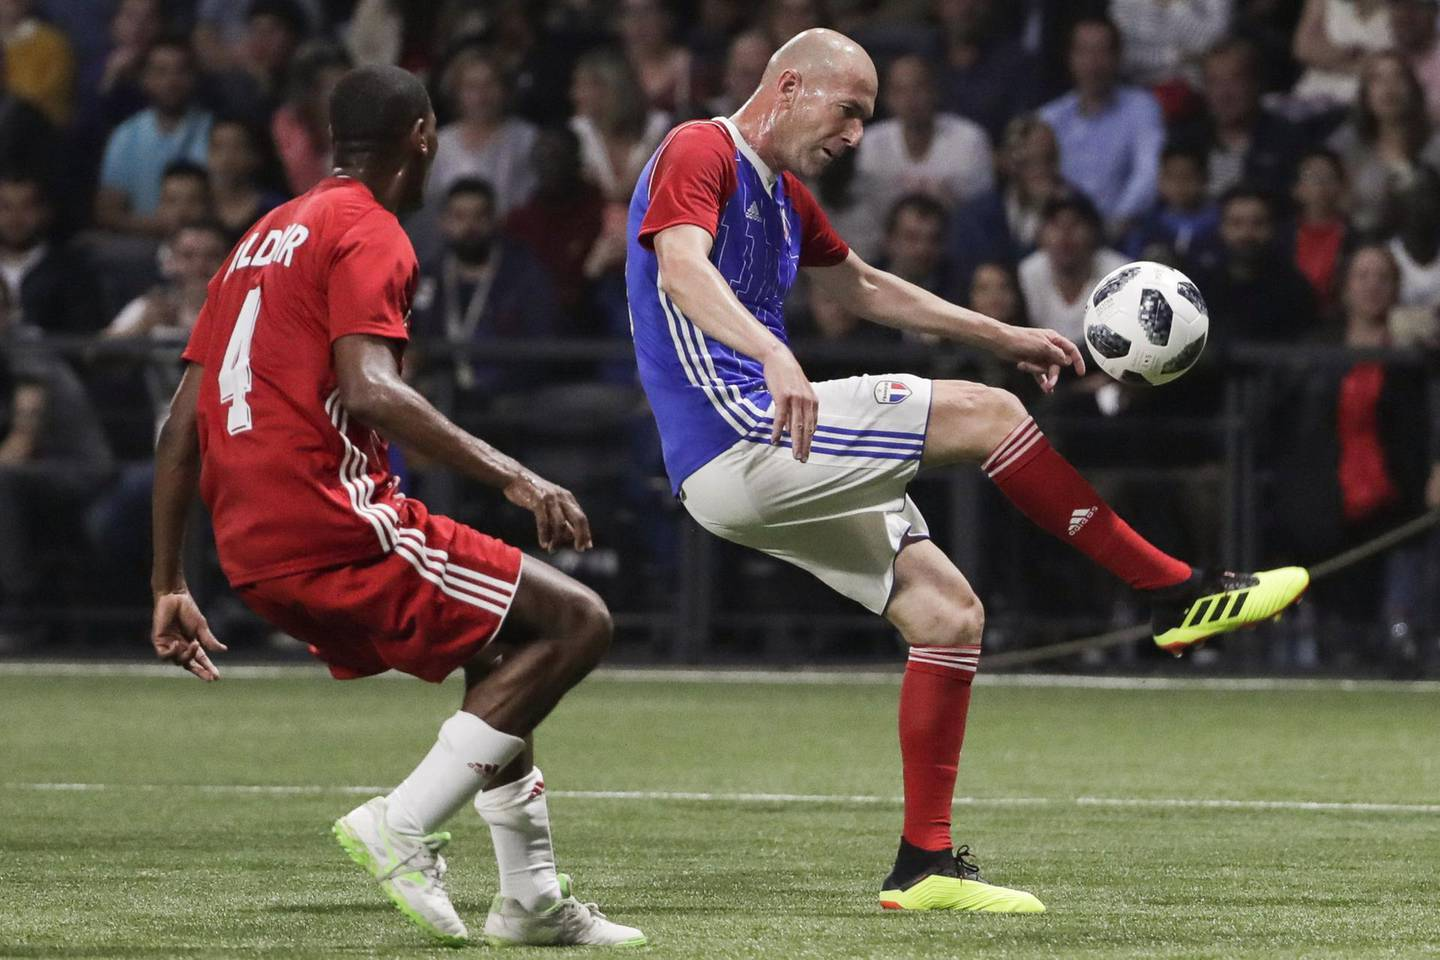 TOPSHOT - France 98's midfielder Zinedine Zidane (R) controls the ball next to Fifa 98's defender Aldair during an exhibition football match between France's 1998 World Cup's French football national team and FIFA 98 composed with former international players, to mark the 20th anniversary of France's 1998 World Cup victory, on June 12, 2018 at the U Arena in Nanterre, near Paris. / AFP / Thomas SAMSON